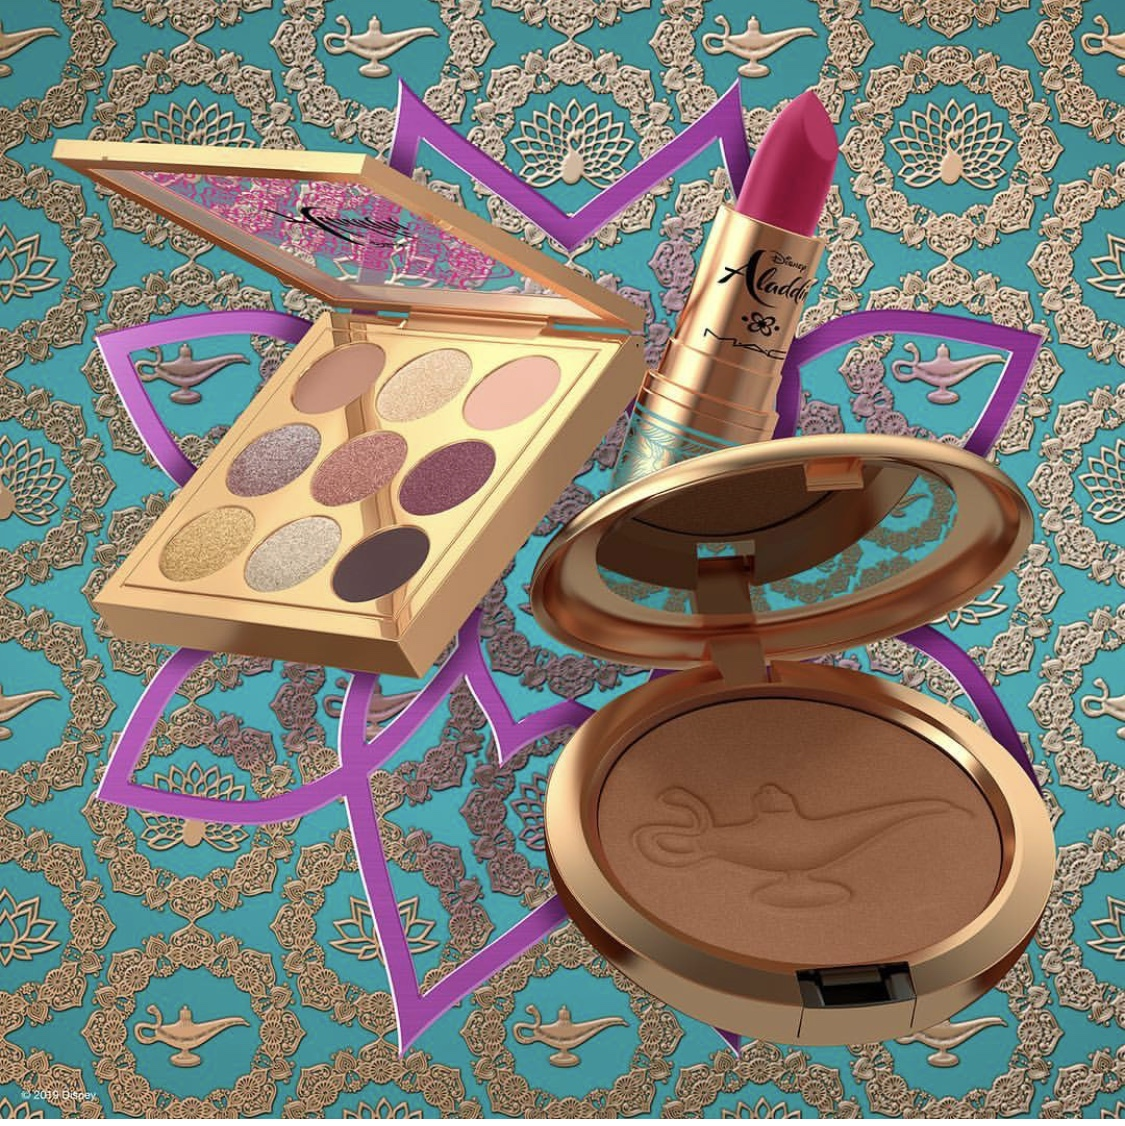 The Disney Aladdin Collection by MAC Cosmetics is Coming! #DisneyStyle 44